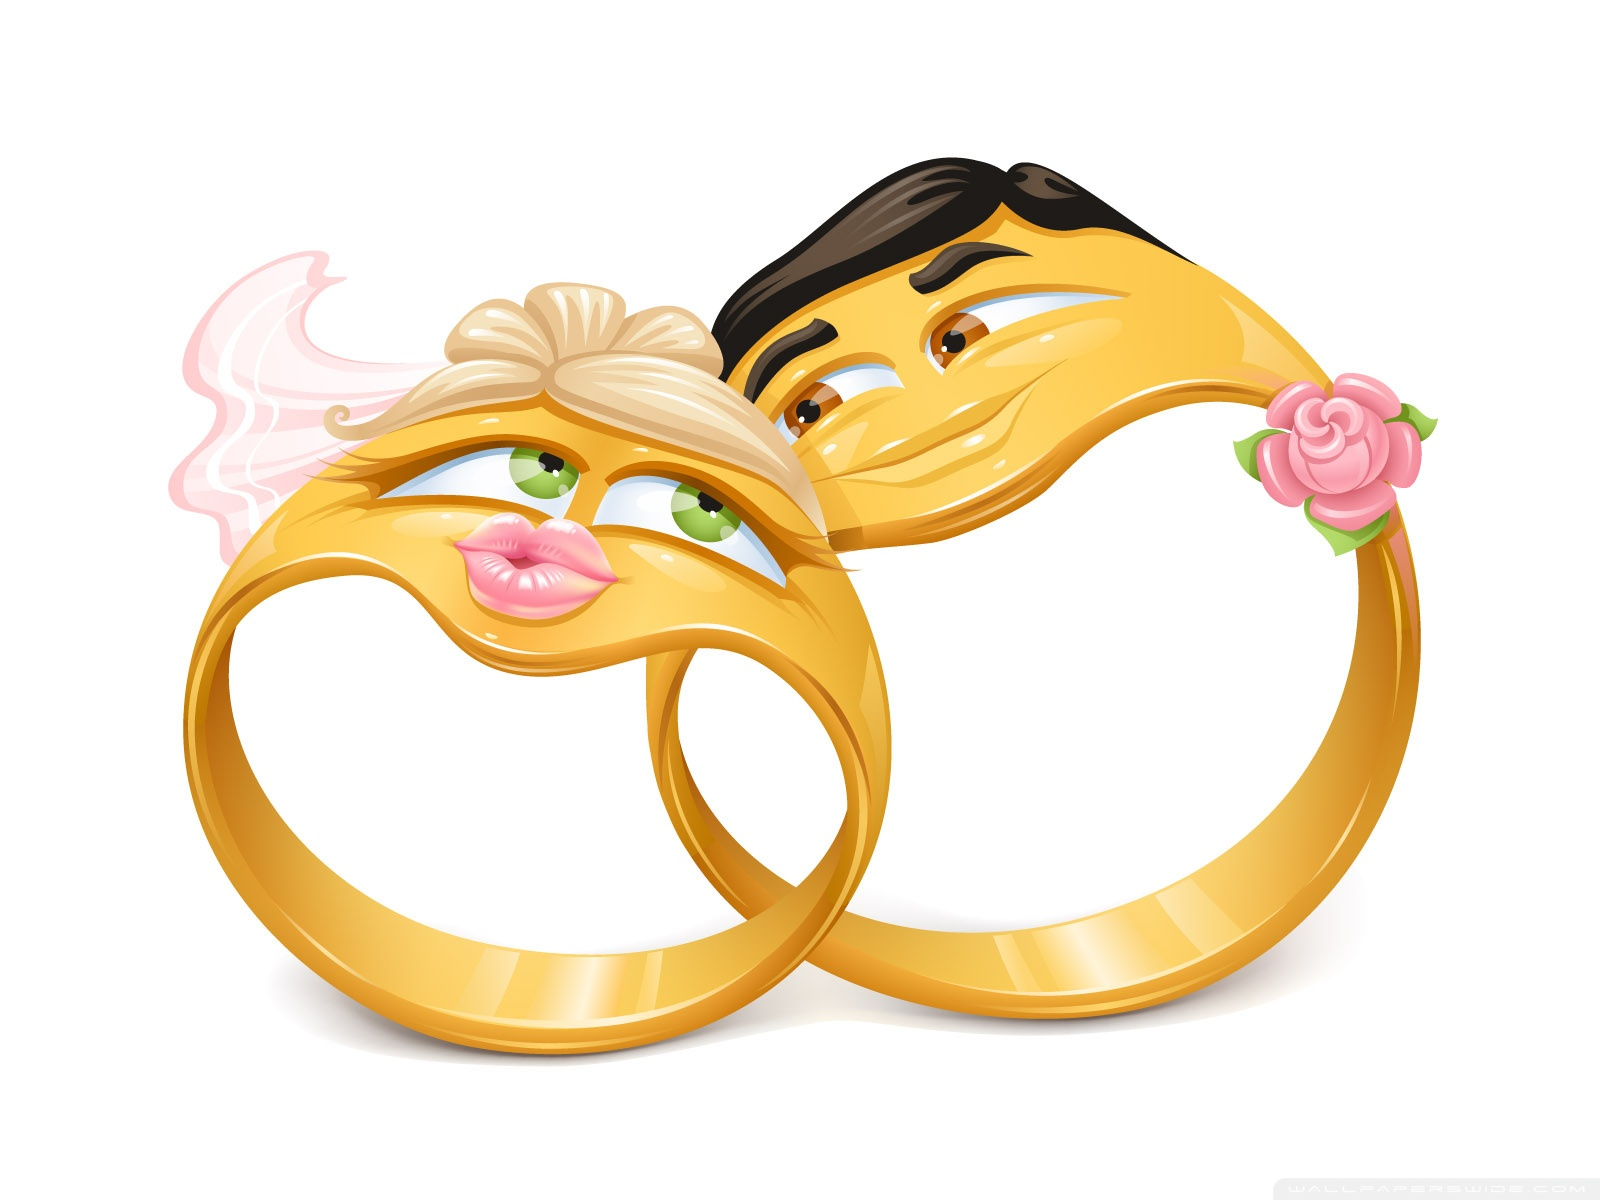 wedding rings wallpapers pictures of wedding rings Standard